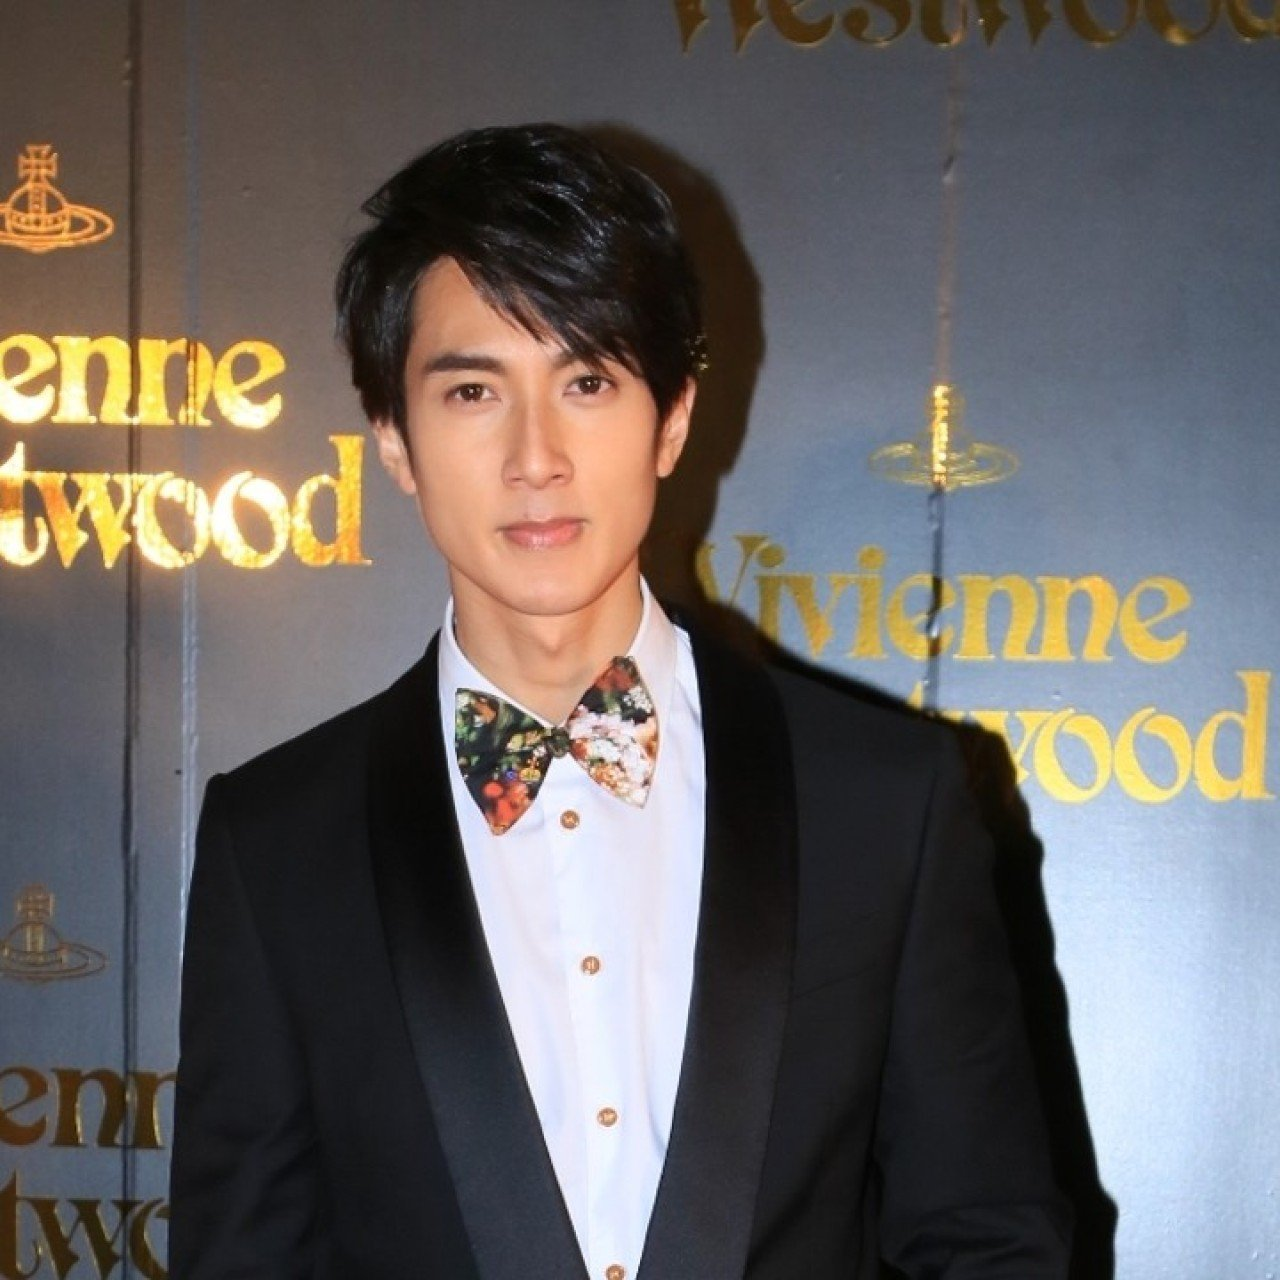 5 things to know about entrepreneur Wu Chun from Taiwanese boy band